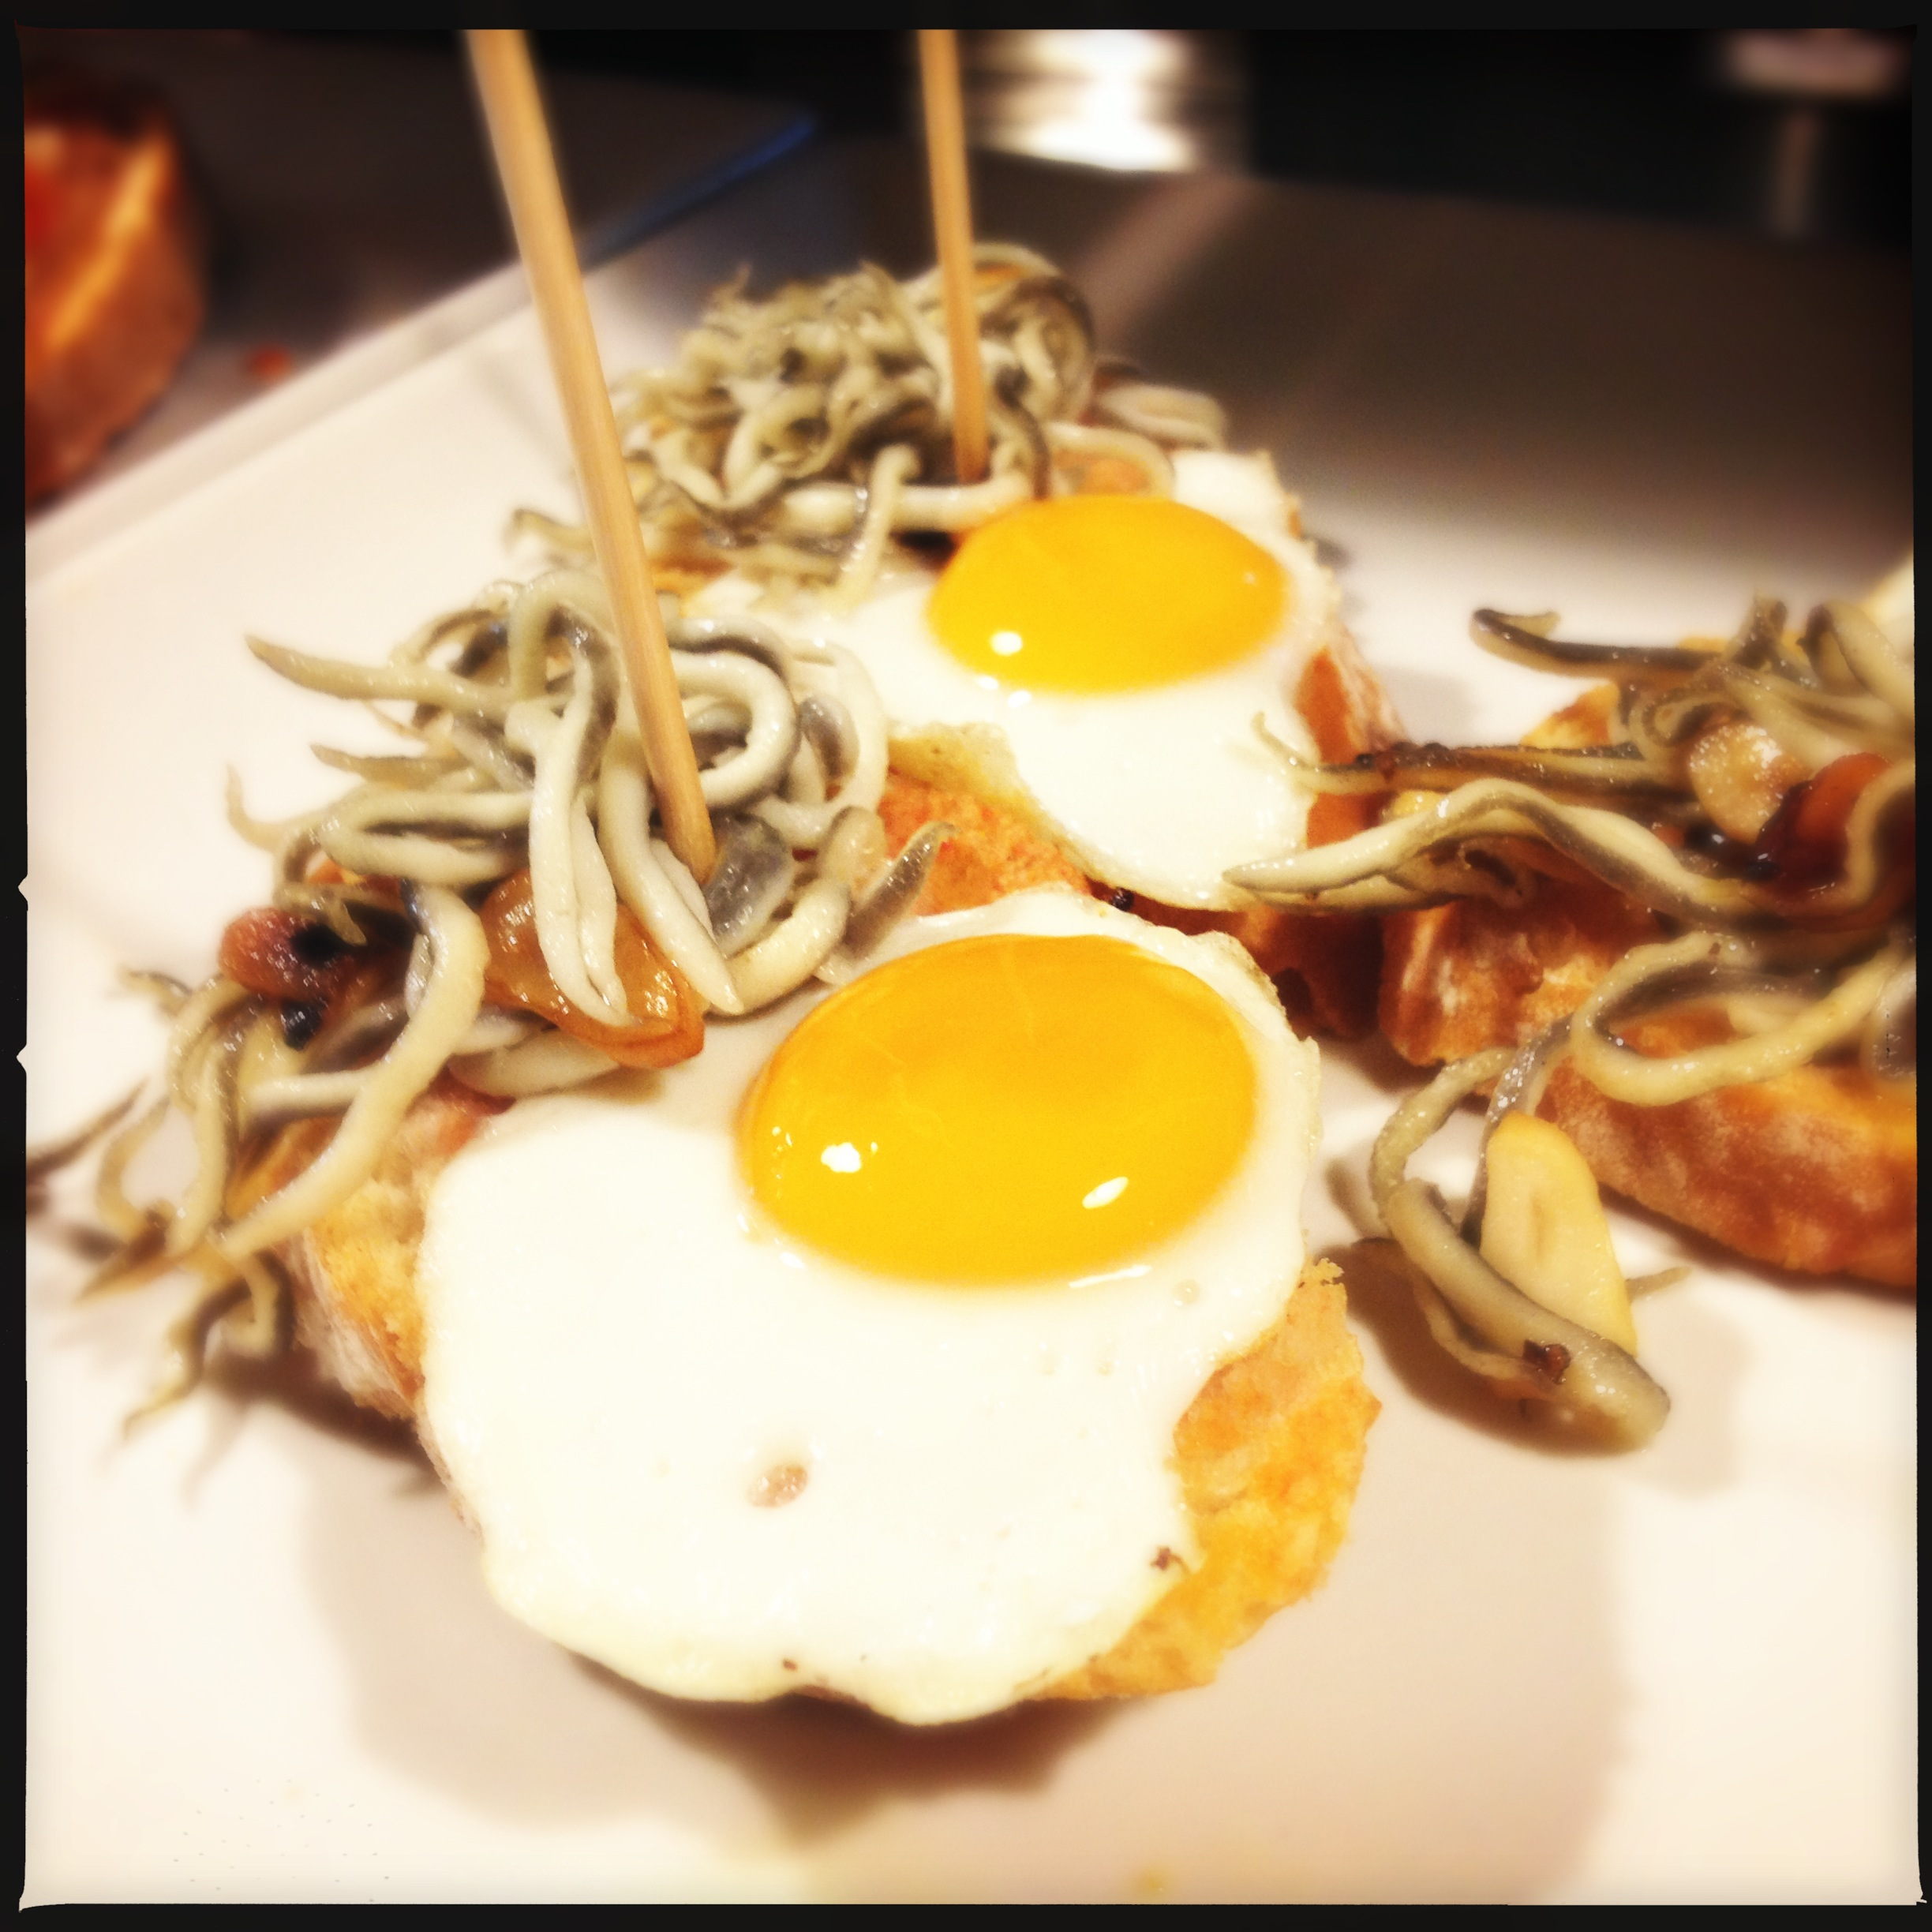 An egg and squid tapas plate from Costa Brava, Spain.